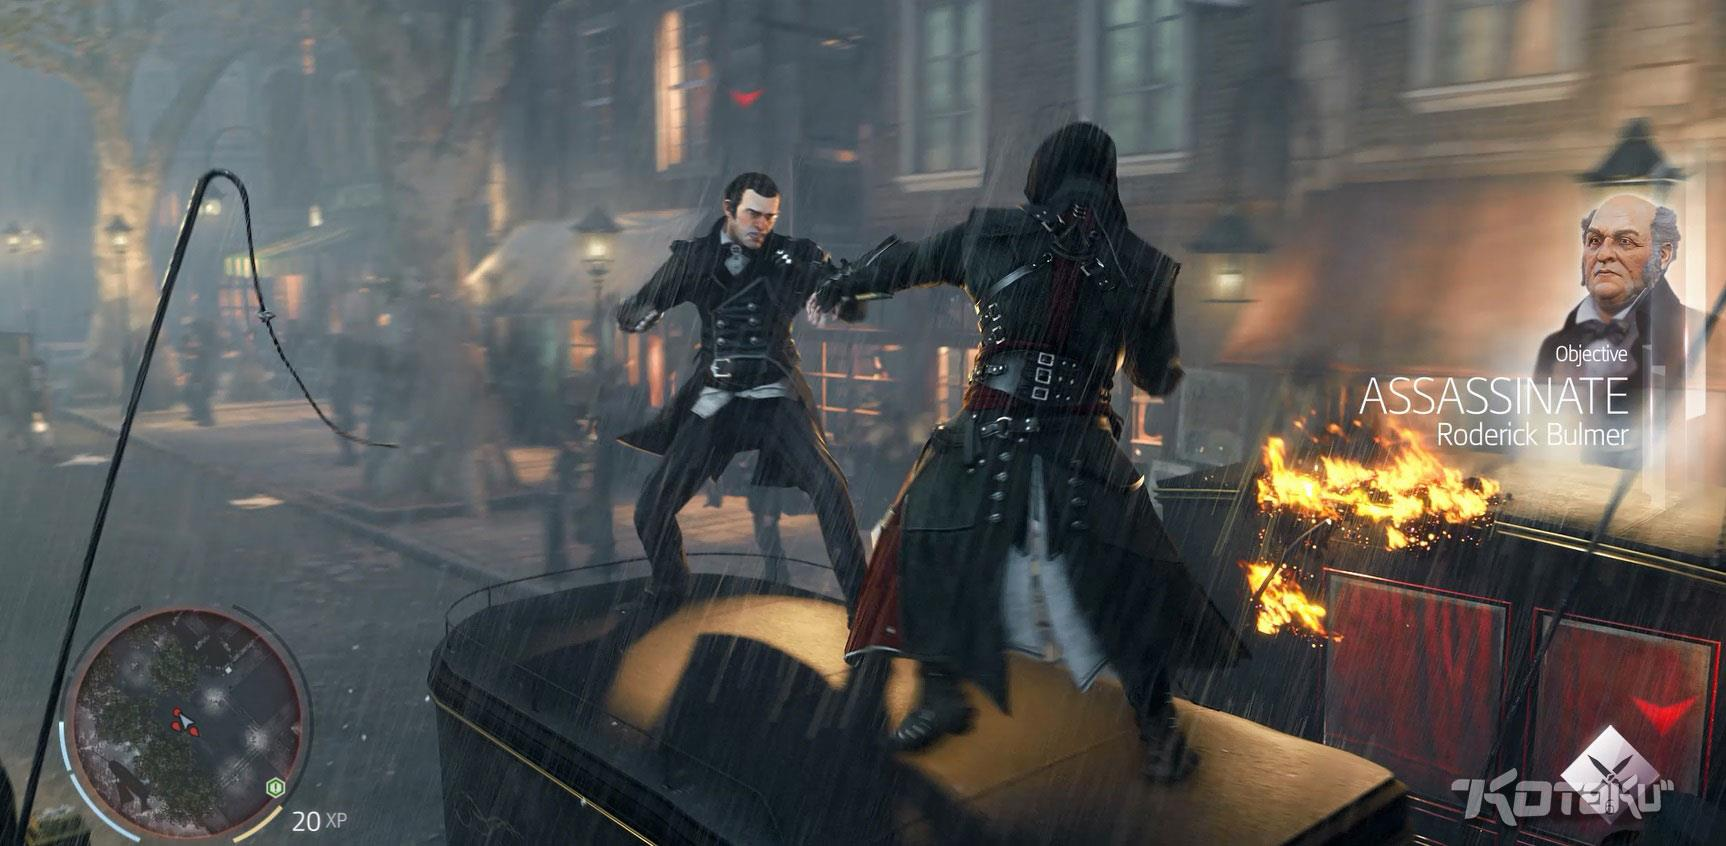 Assassin's Creed Victory, missione di assassinio